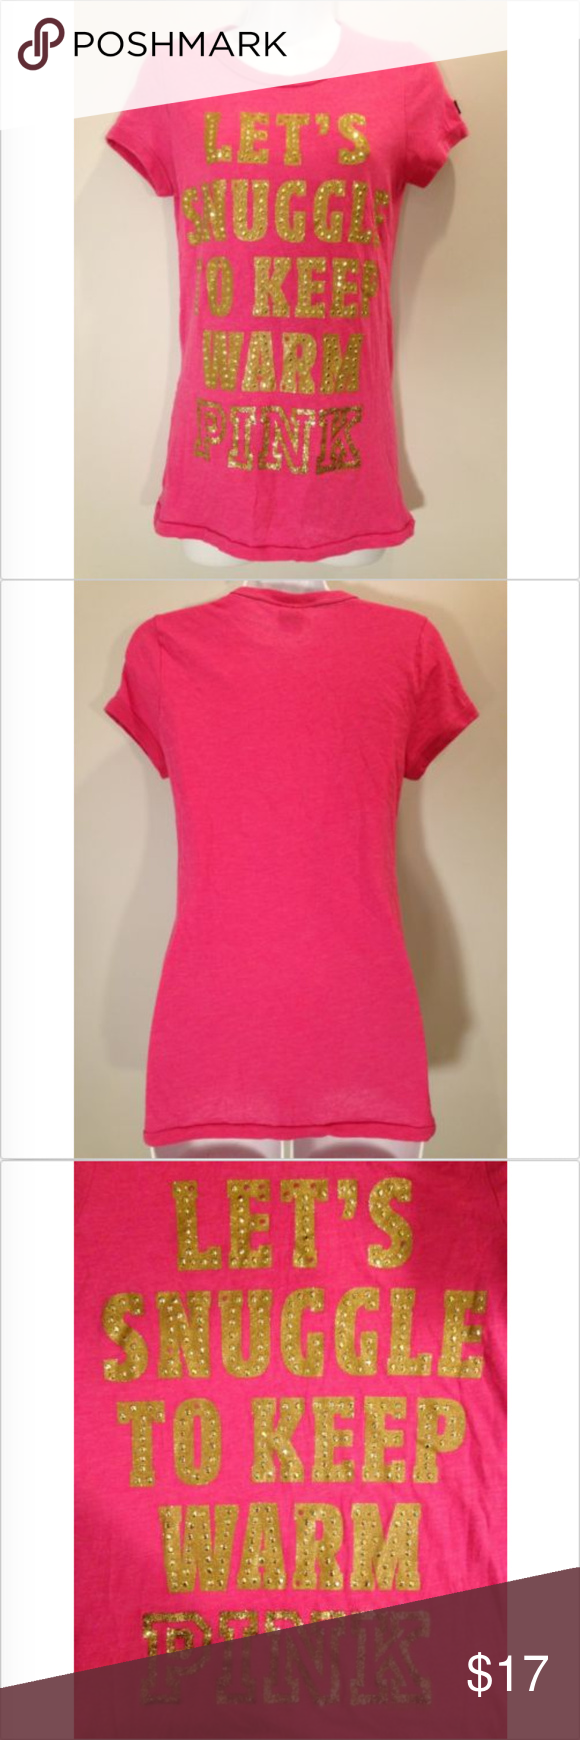 93a166266 Shirts From Pink Vs | Top Mode Depot